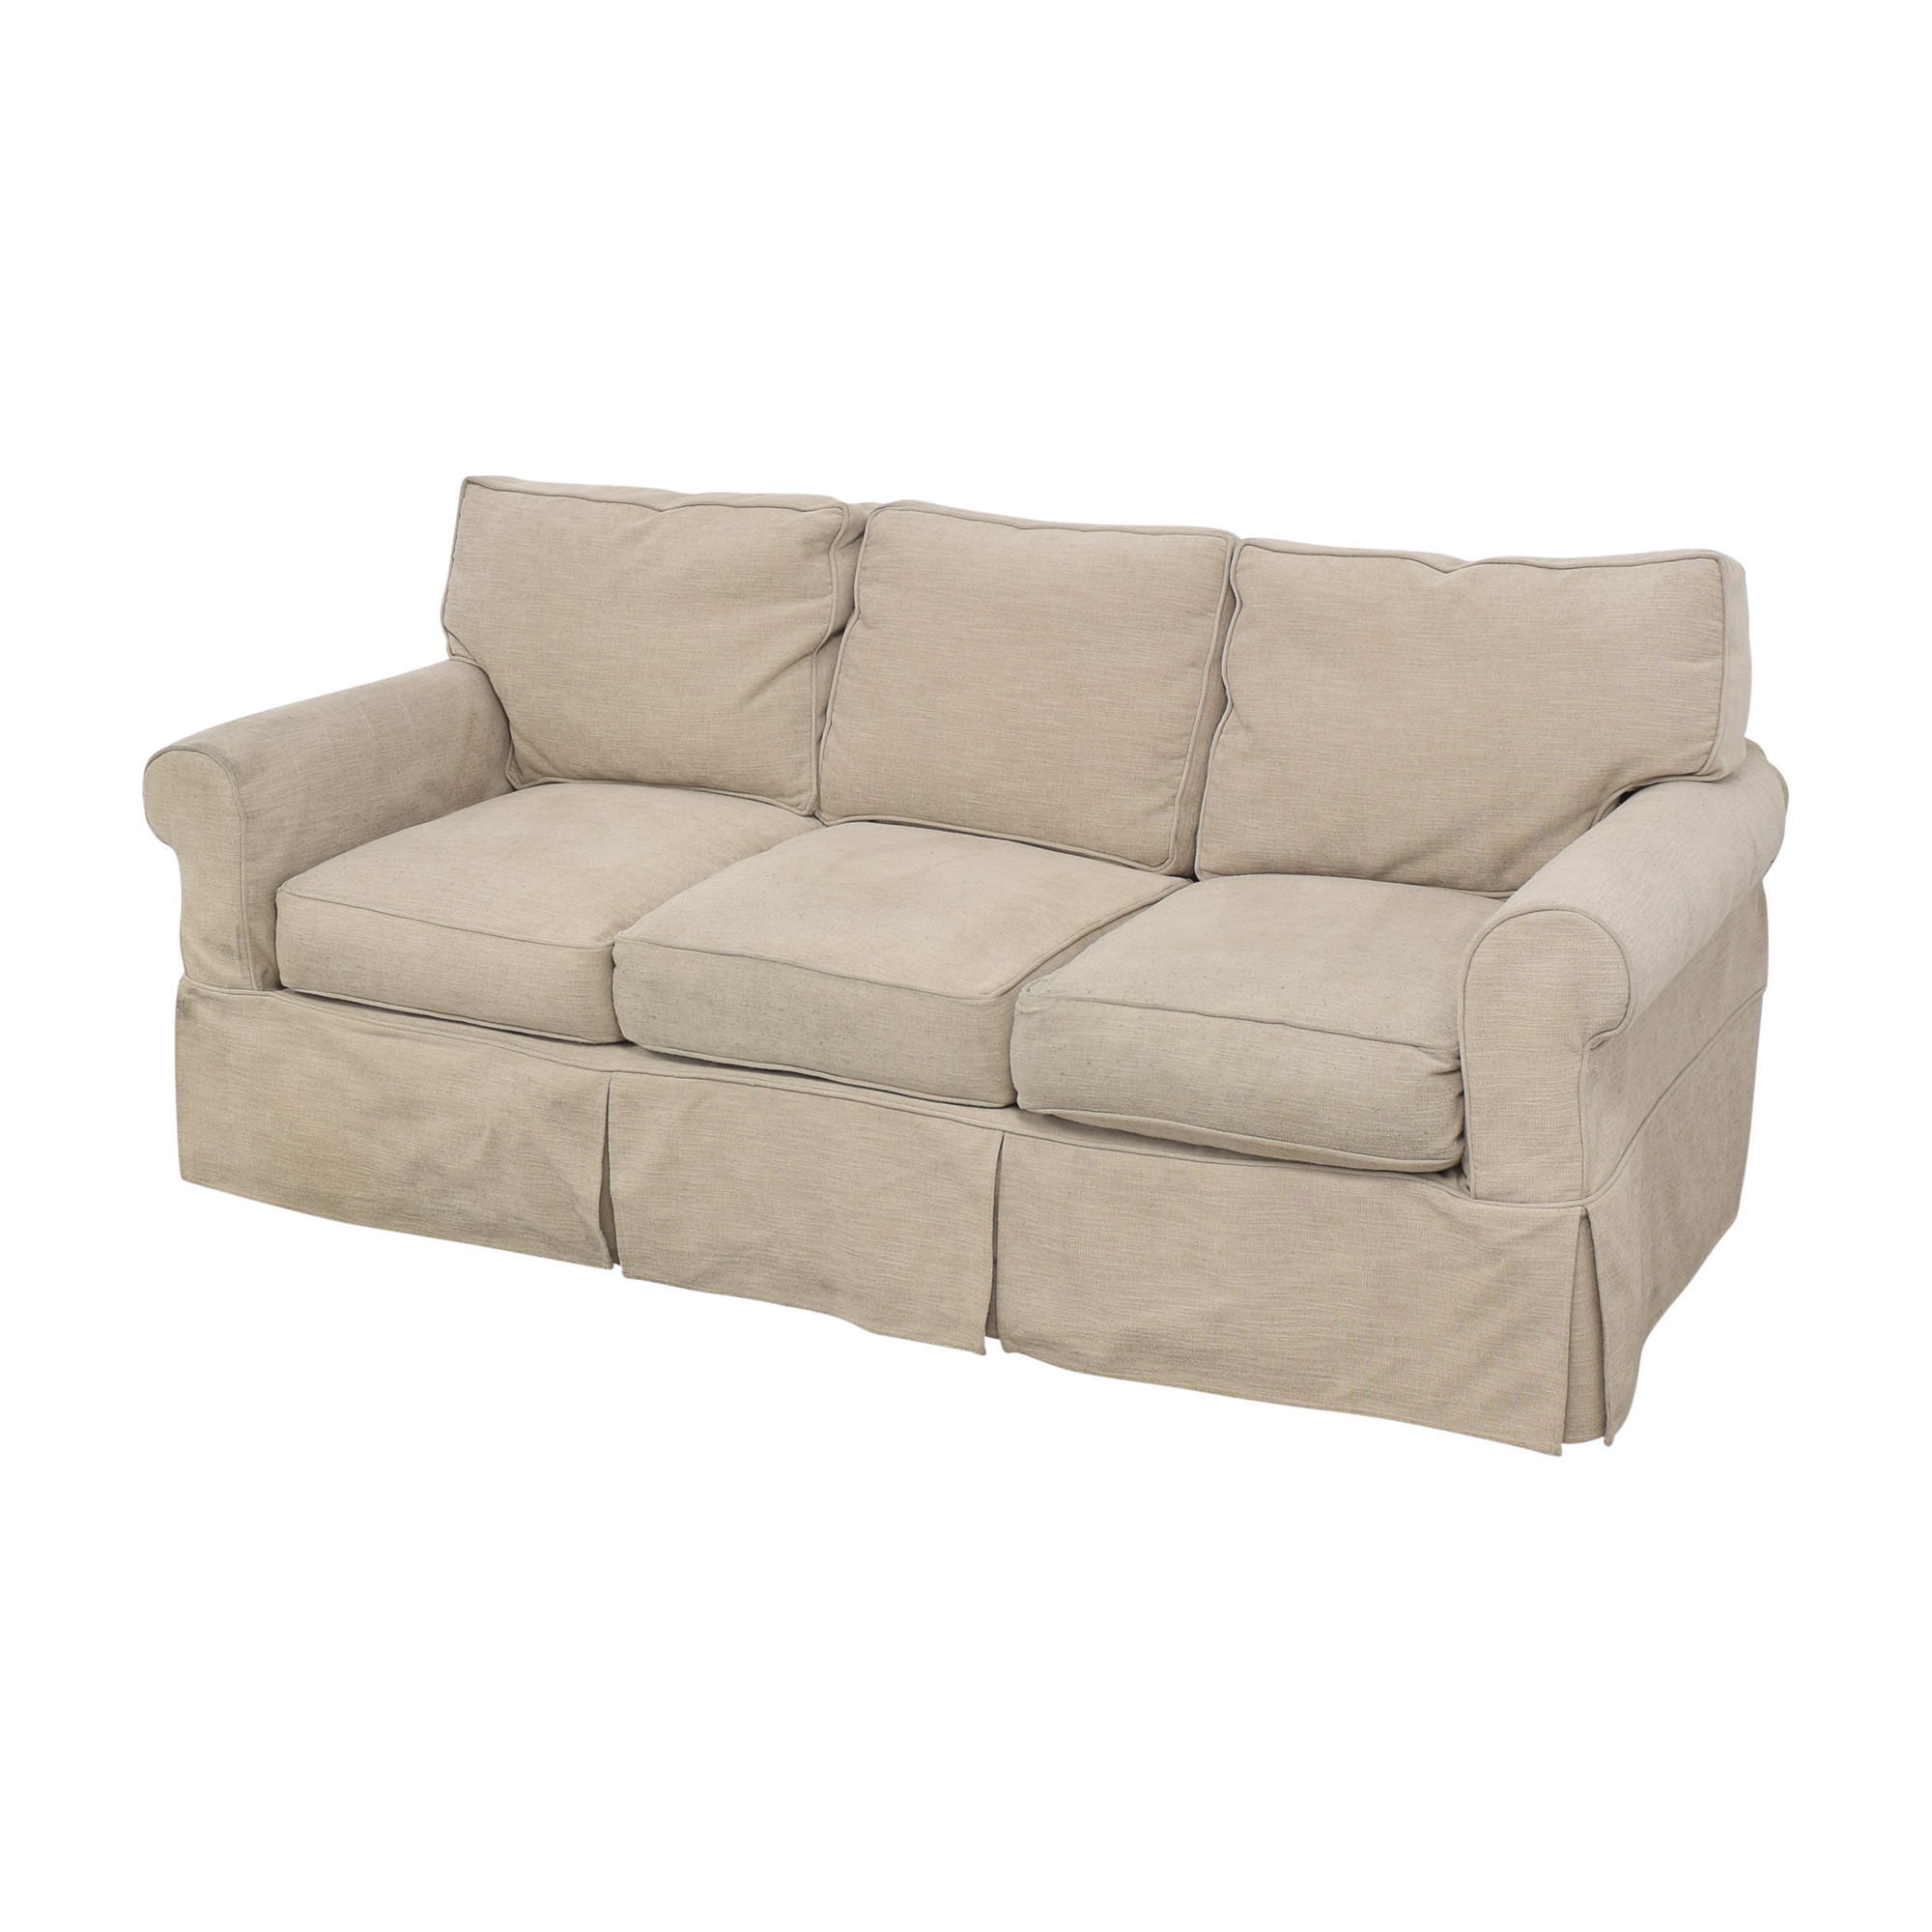 Country Willow Country Willow Roll Arm Slipcovered Sofa beige